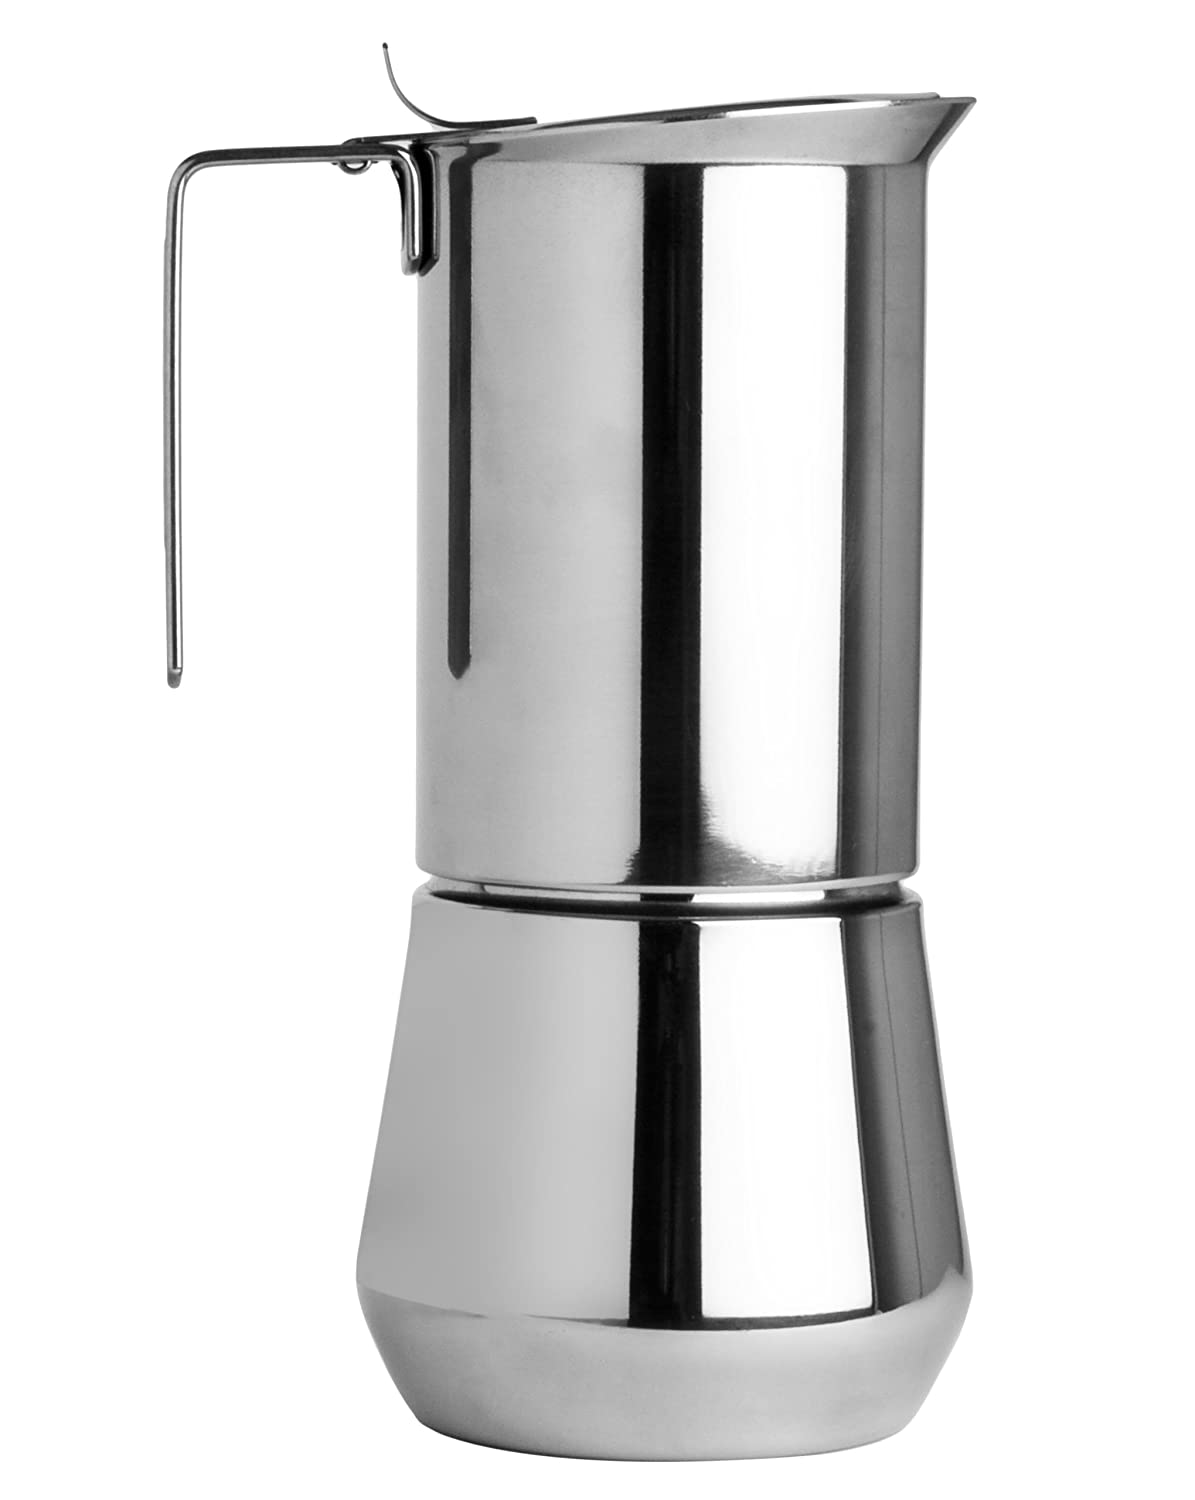 ILSA Stainless Steel 3 Cup Stovetop Espresso Maker V14-3CUP at Sears.com